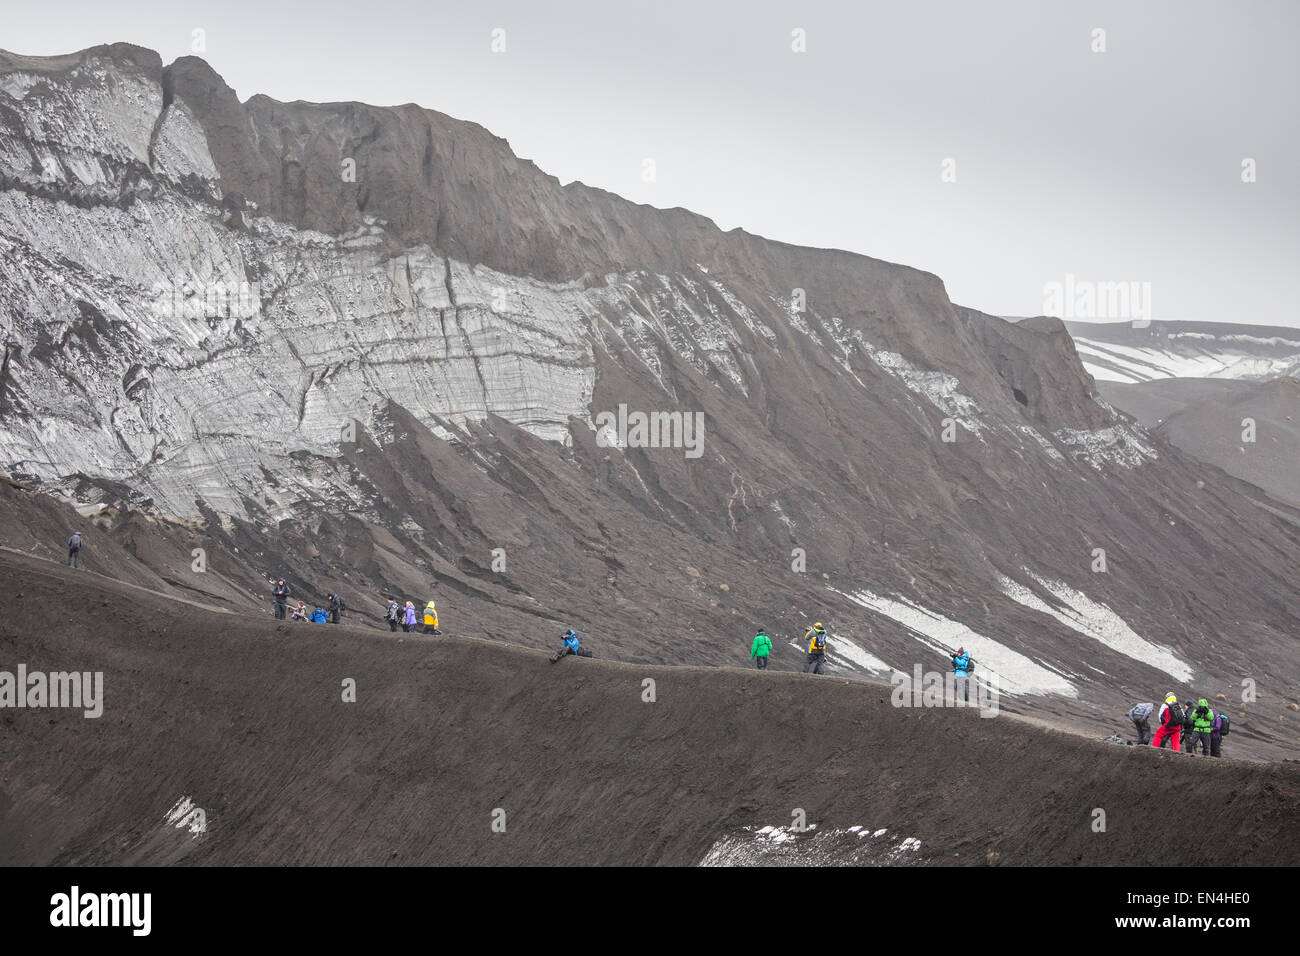 photographers on photo seminar expedition, Telefon Ridge, Telefon Bay, Deception Island, Antractica - Stock Image